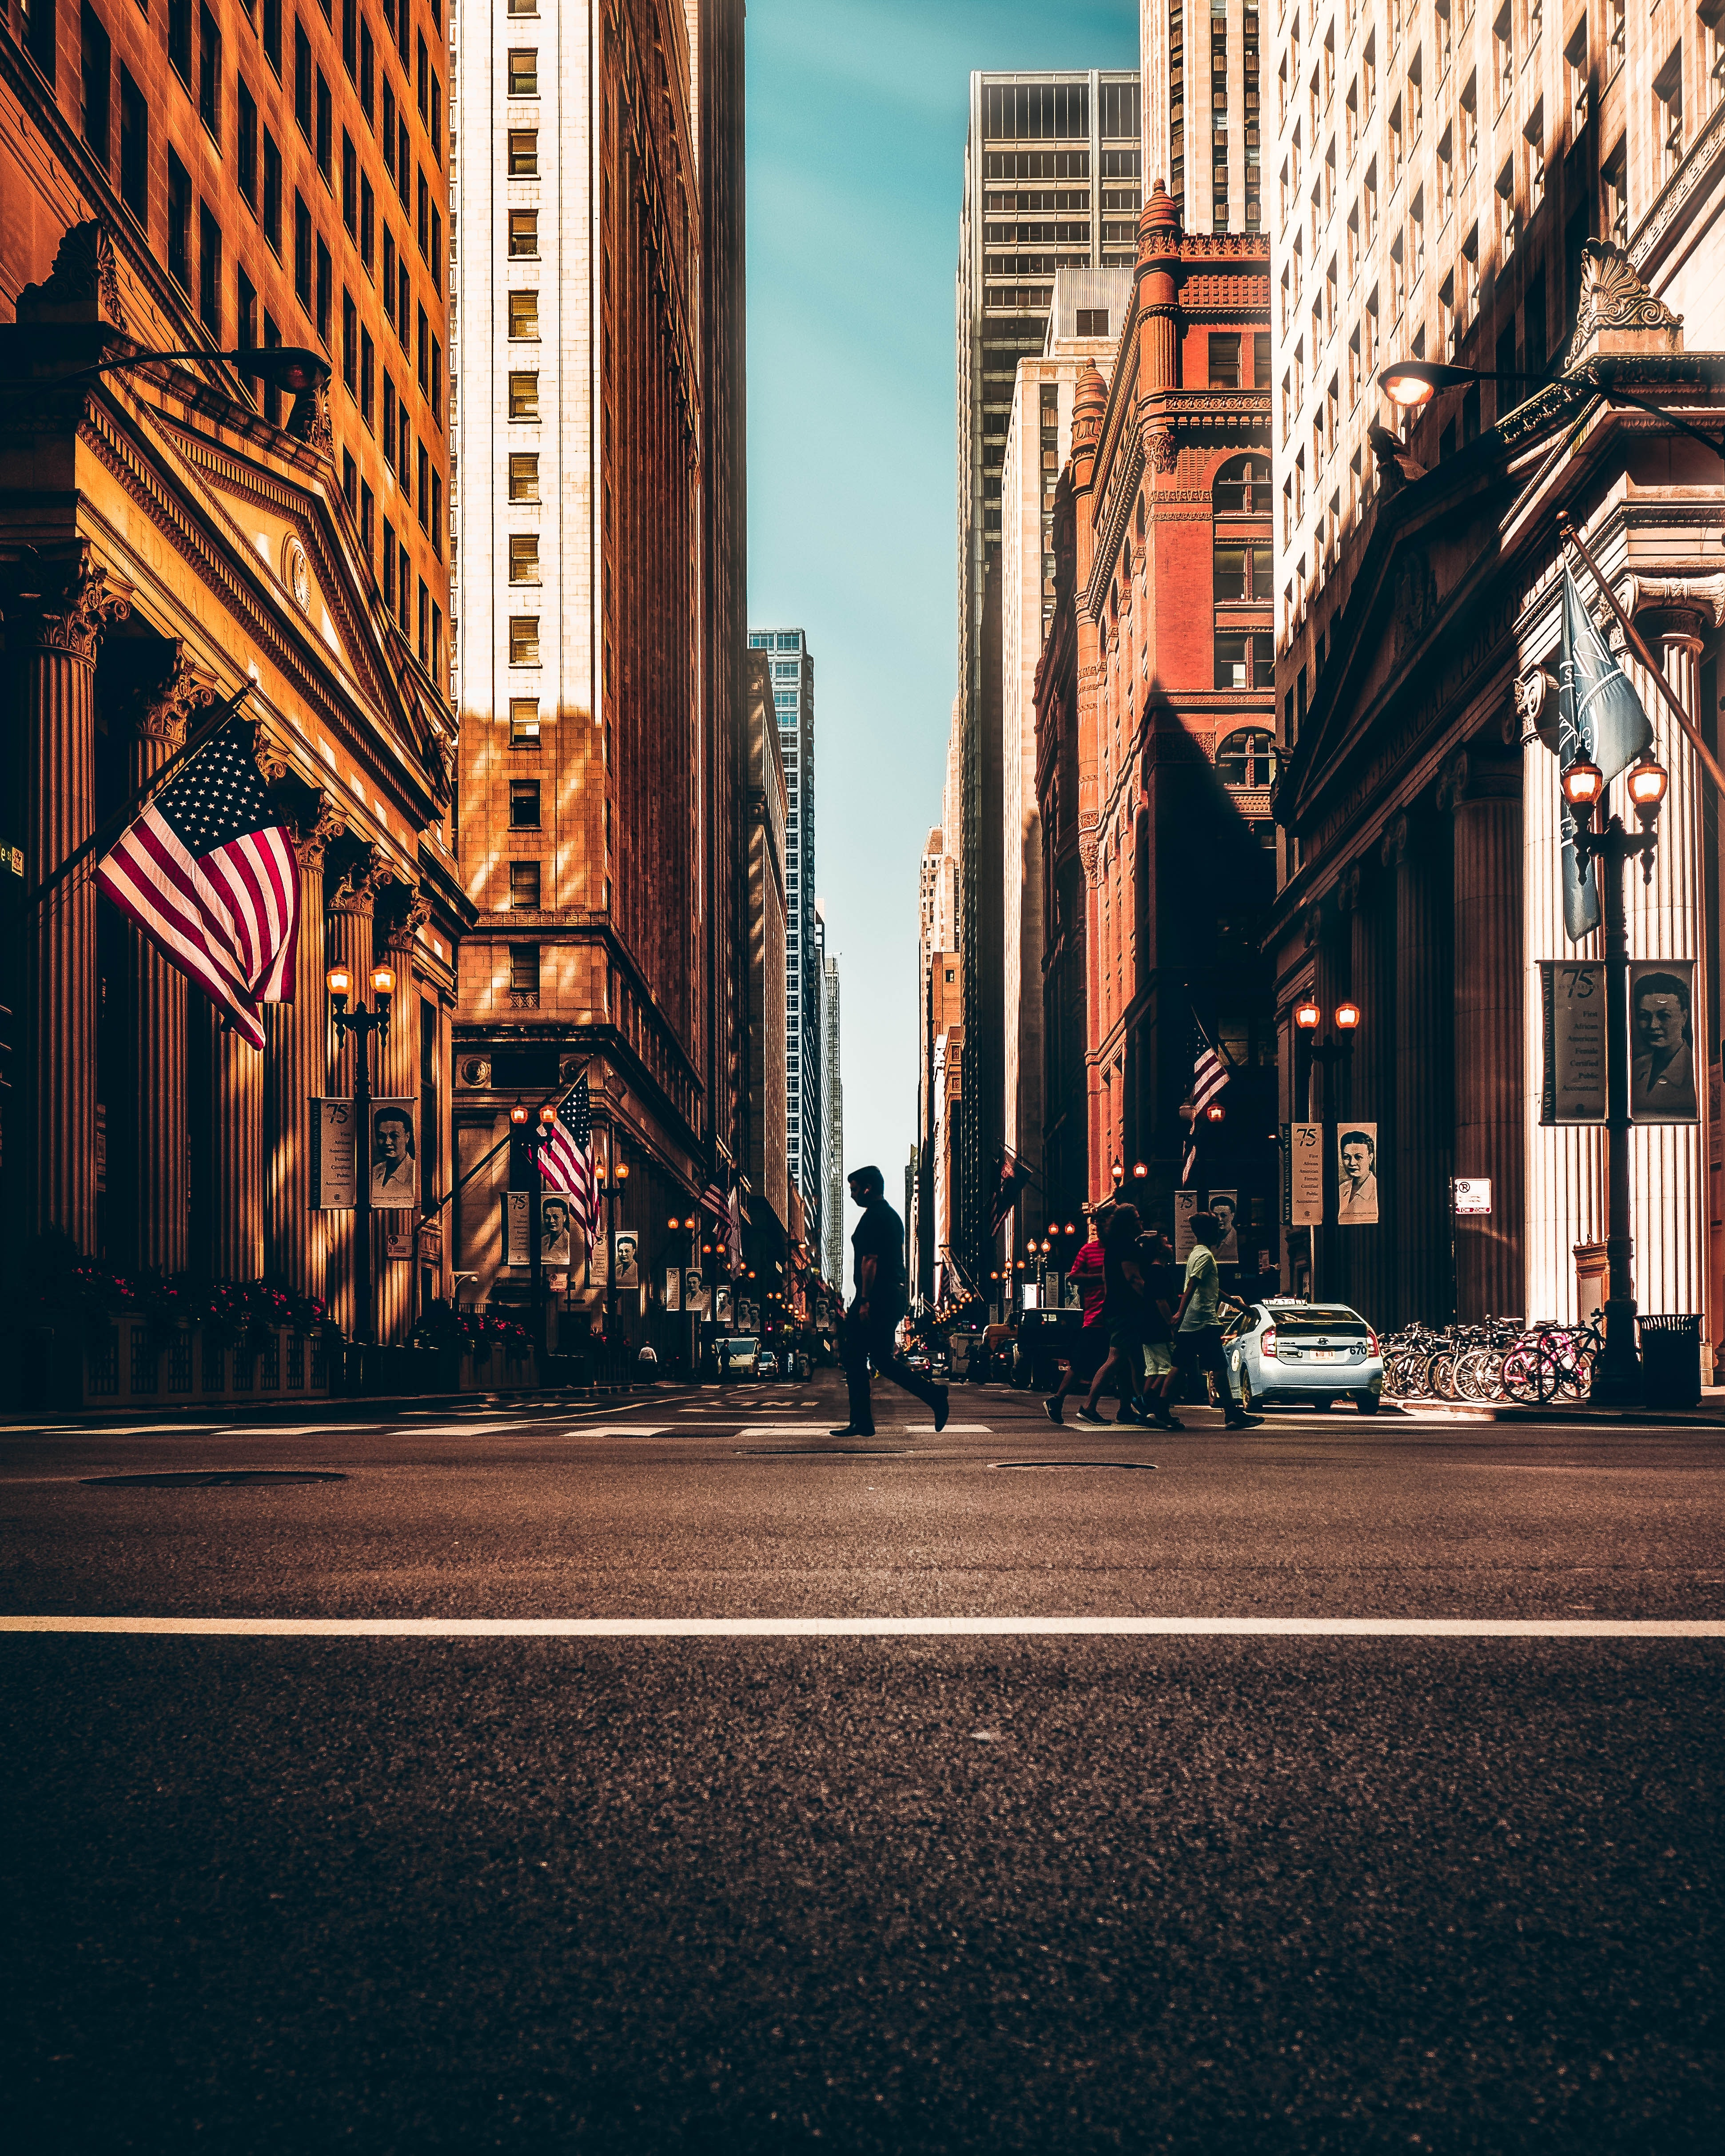 Empty city street with American Flag on Building